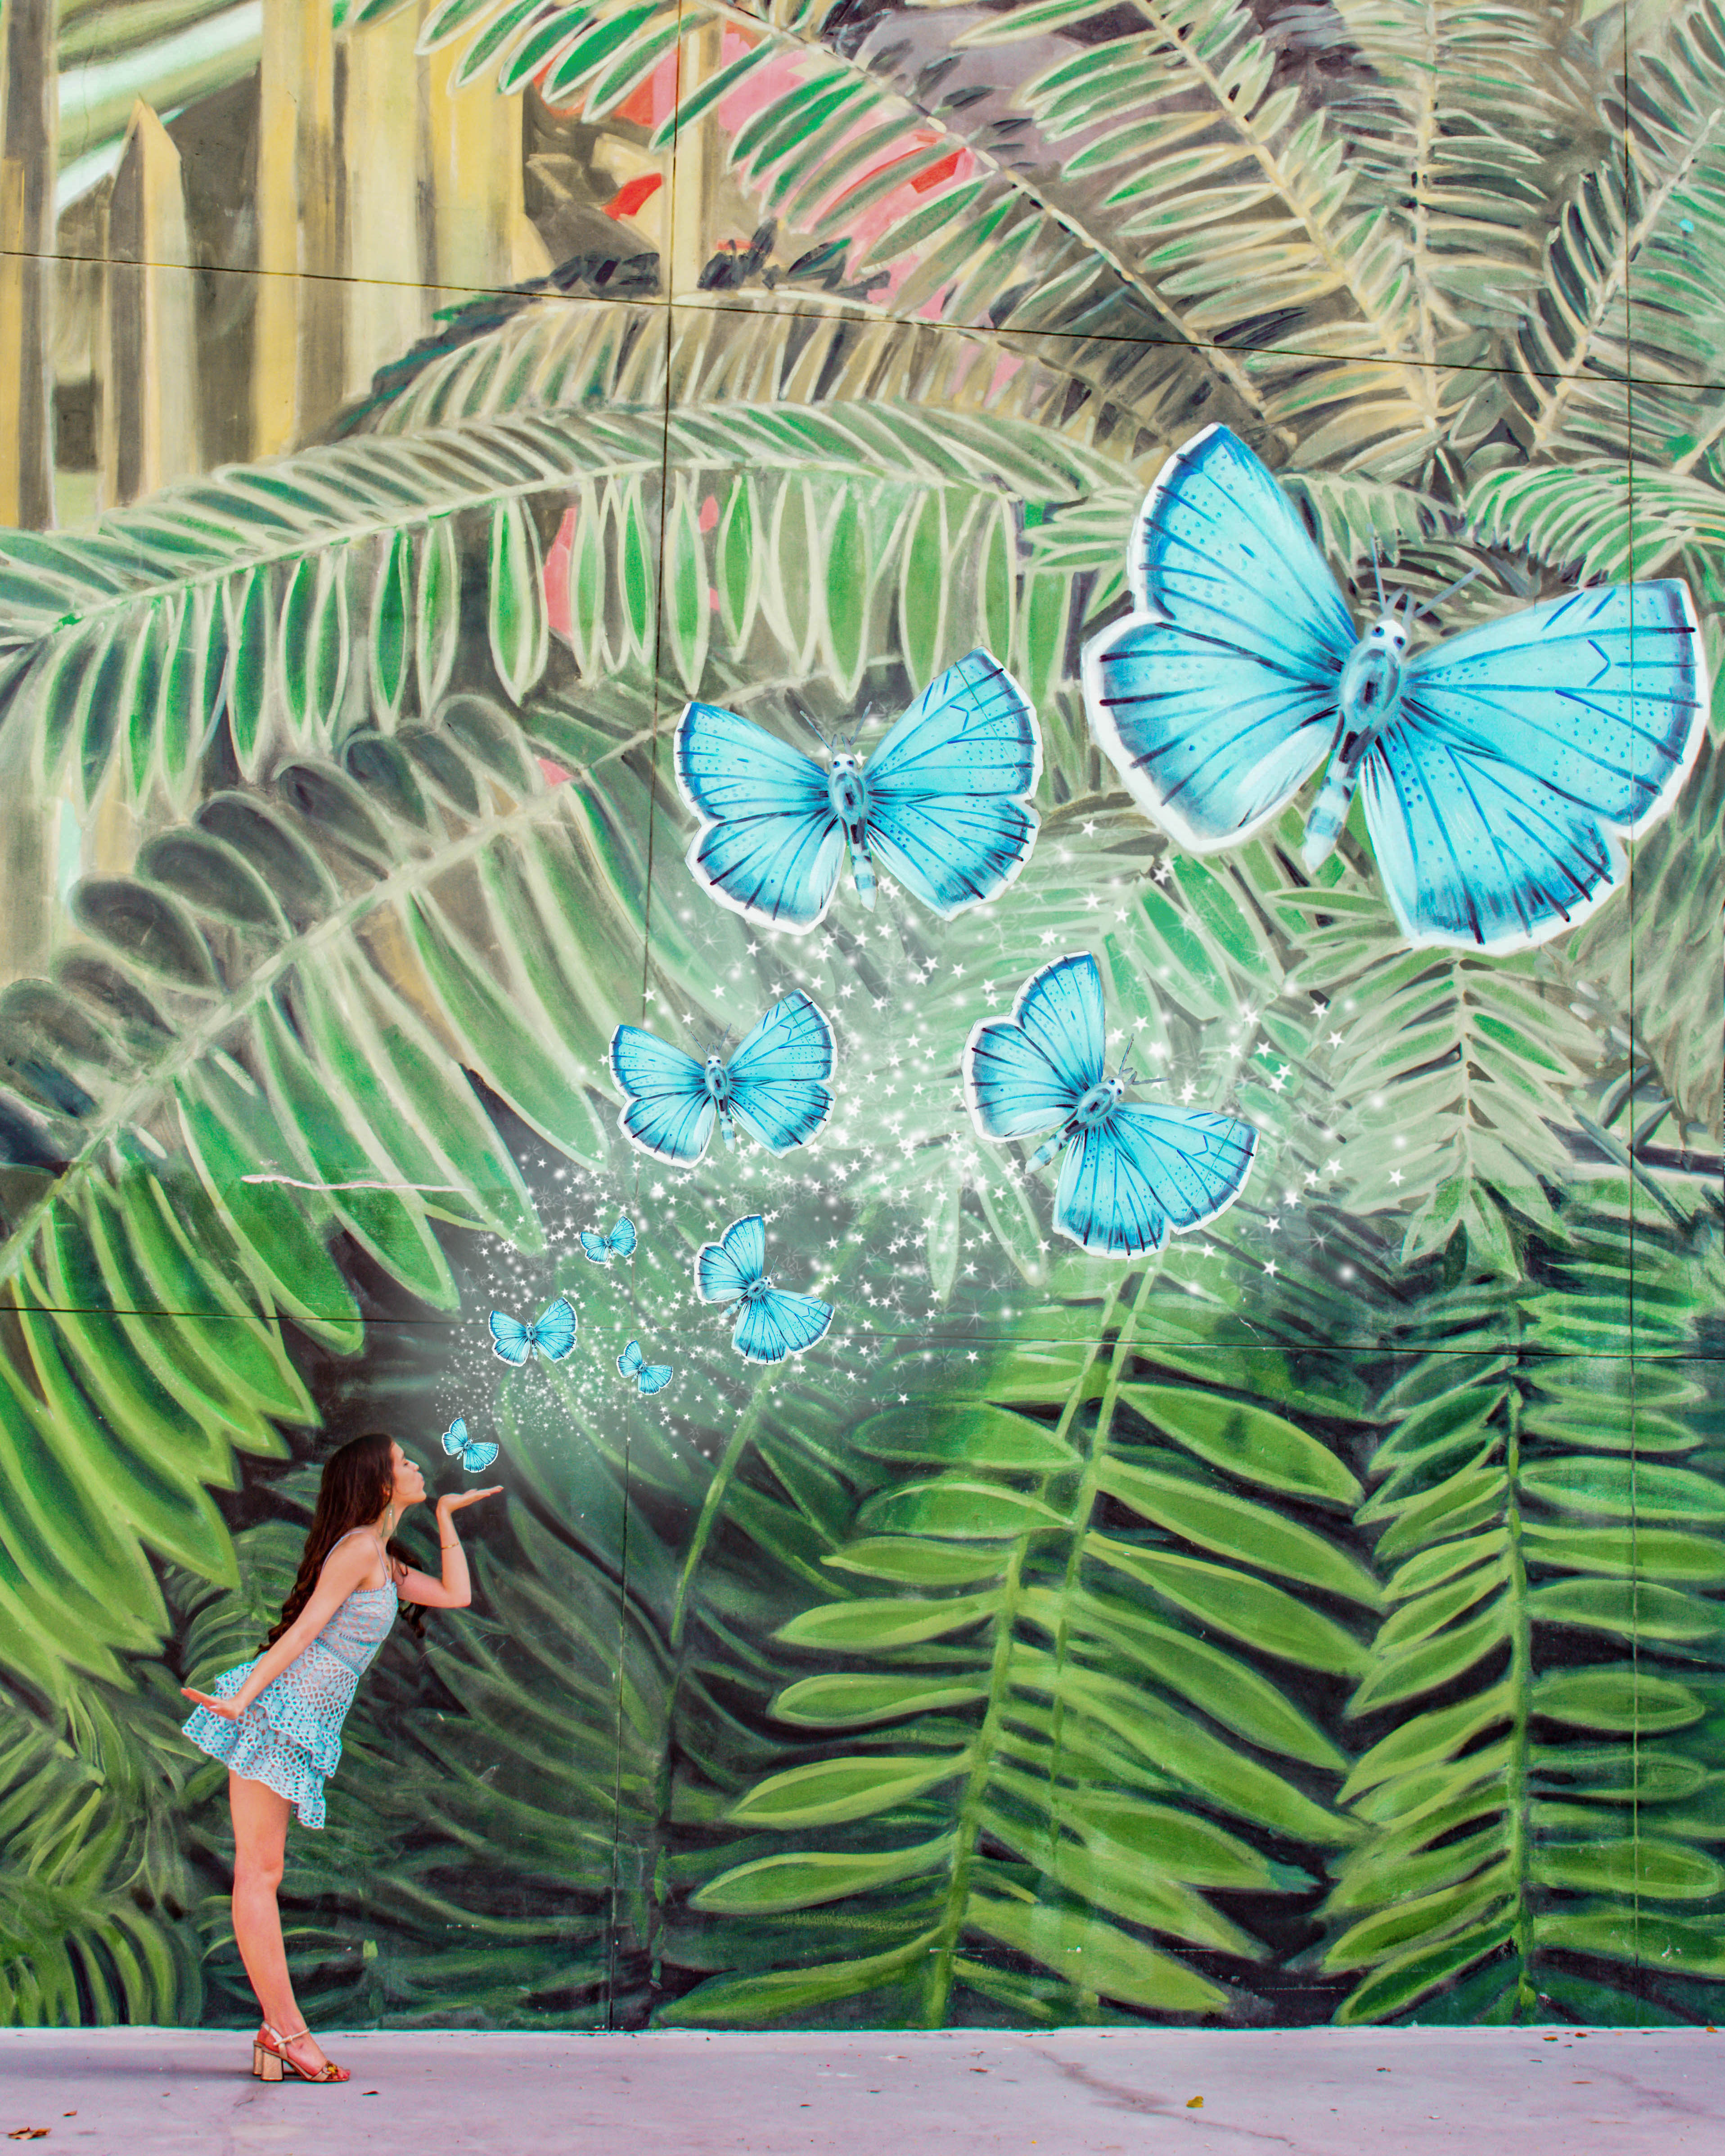 Eva Phan Eva Darling Miami Design District Jungle Plaza 2x4 Butterfly Mural instagrammable places to go in miami Instagram worthy street art lulu's beauty and lace sky blue dress gucci gold leather sandals dreamy wanderlust surrealism photoshop edit travel blogger